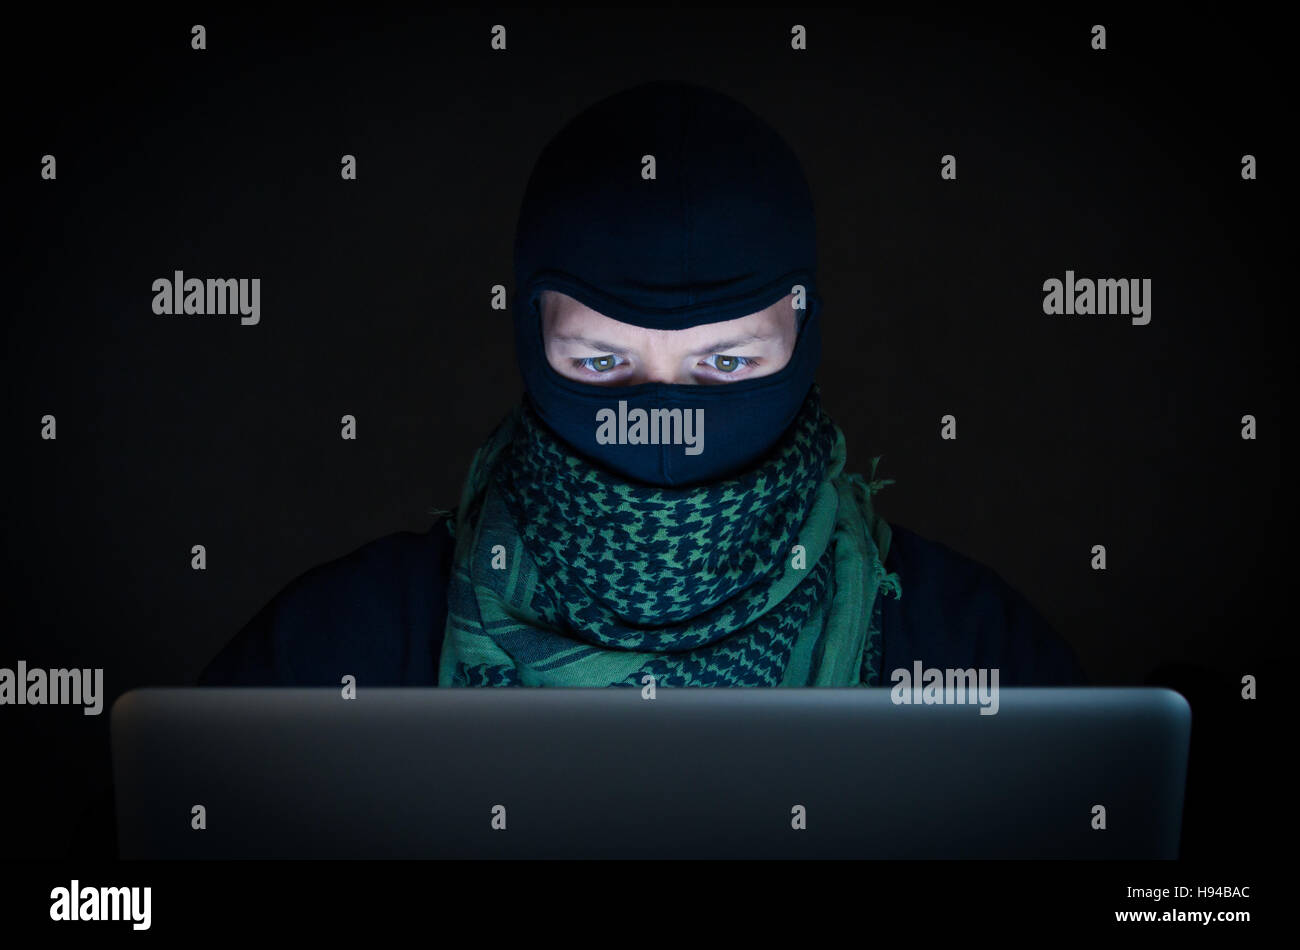 Terrorist working on his computer. Concept about international crisis, war and terrorism - Stock Image